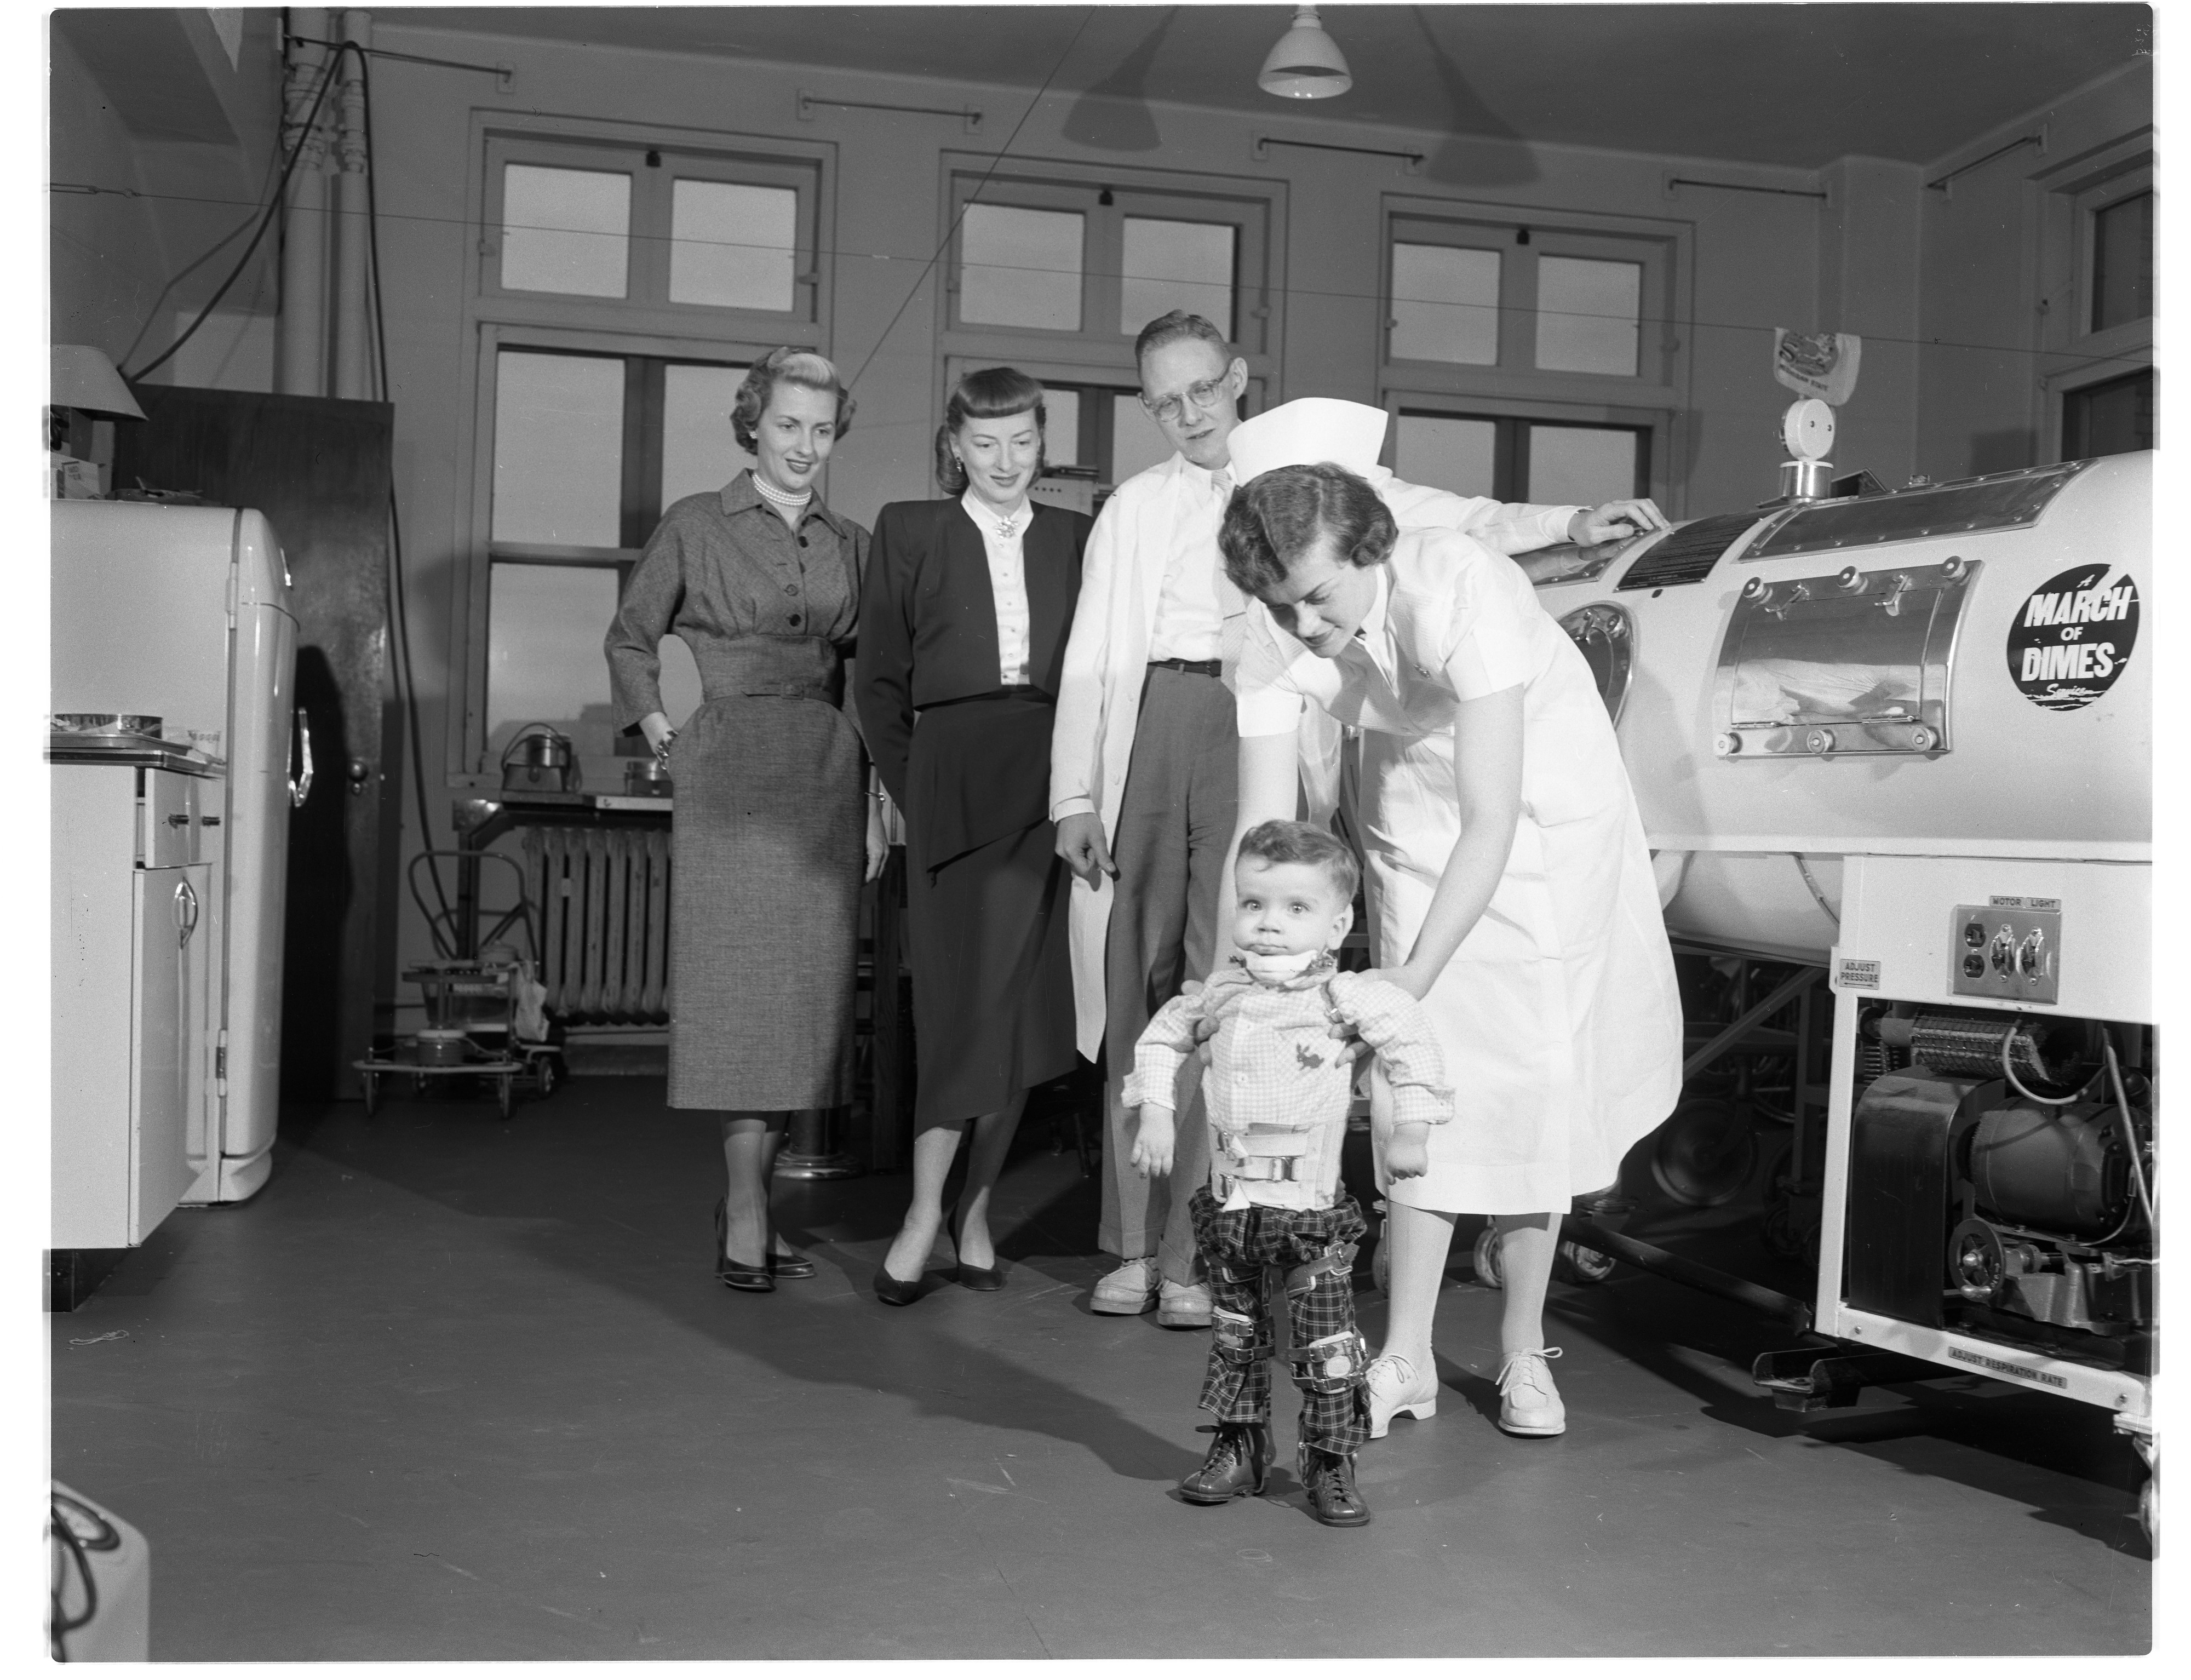 Bobby Snyder Receives Treatment for Polio at University Hospital, December 1953 image